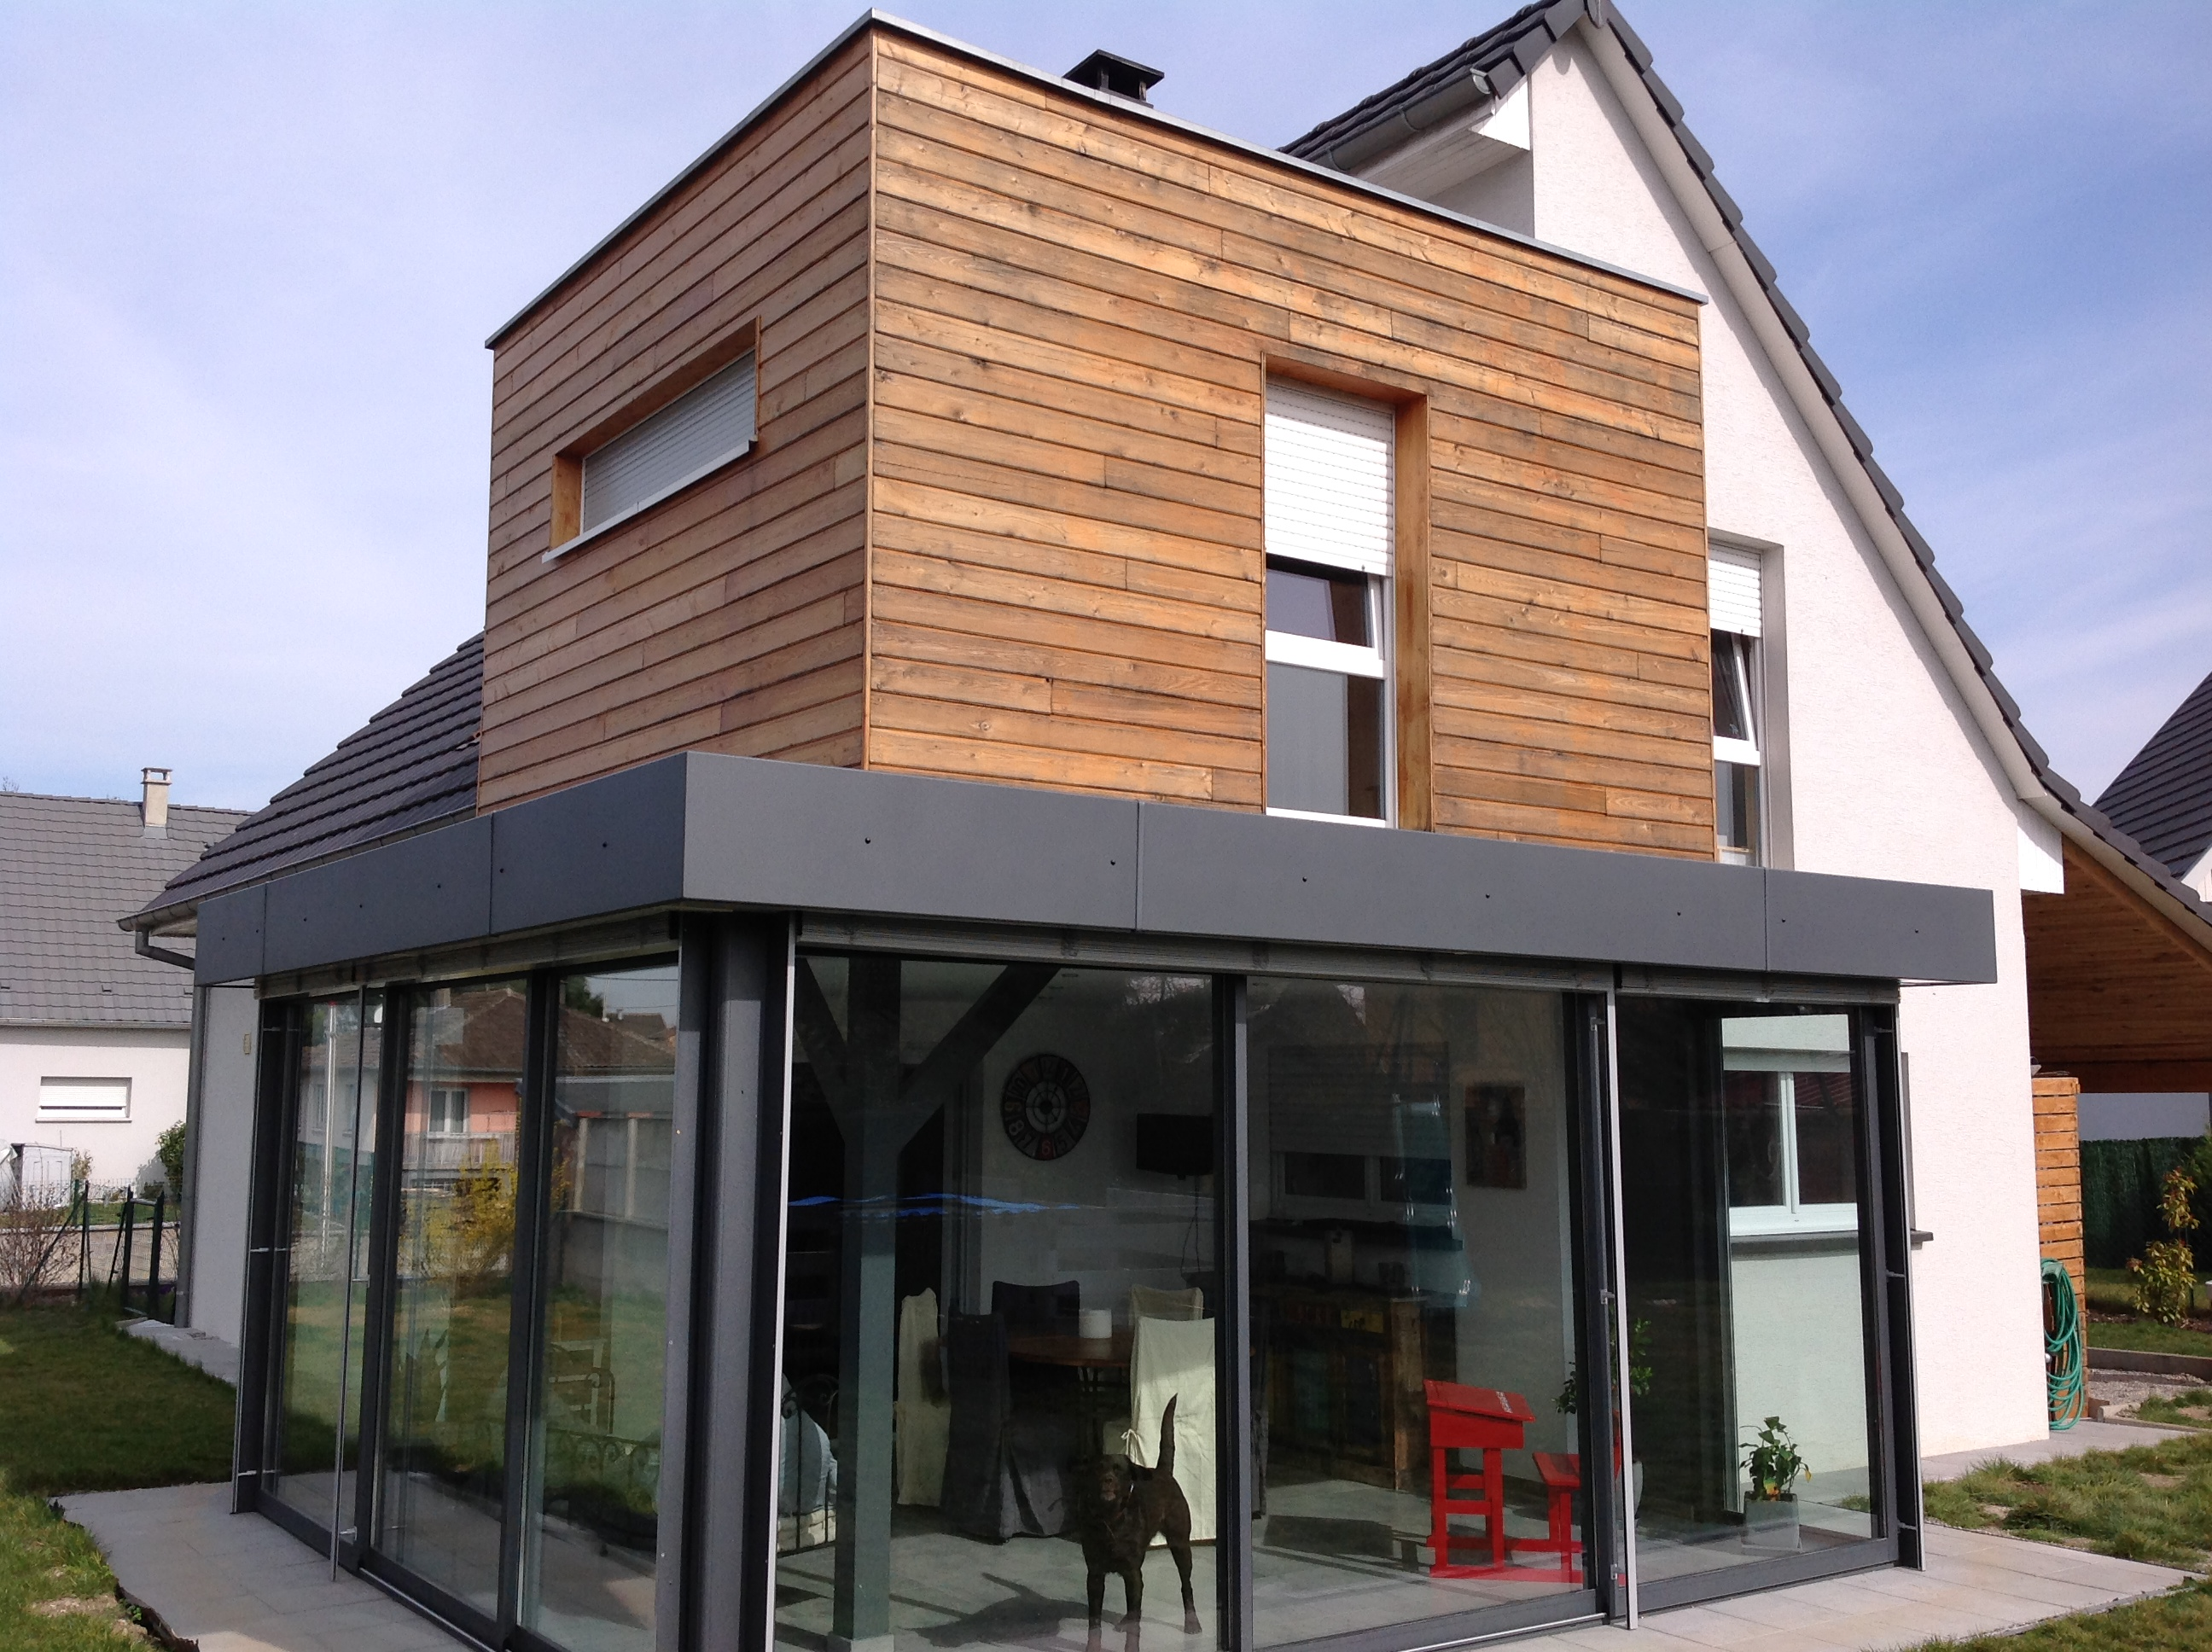 Extension de maison en tage abt construction bois for Entreprise extension maison yvelines